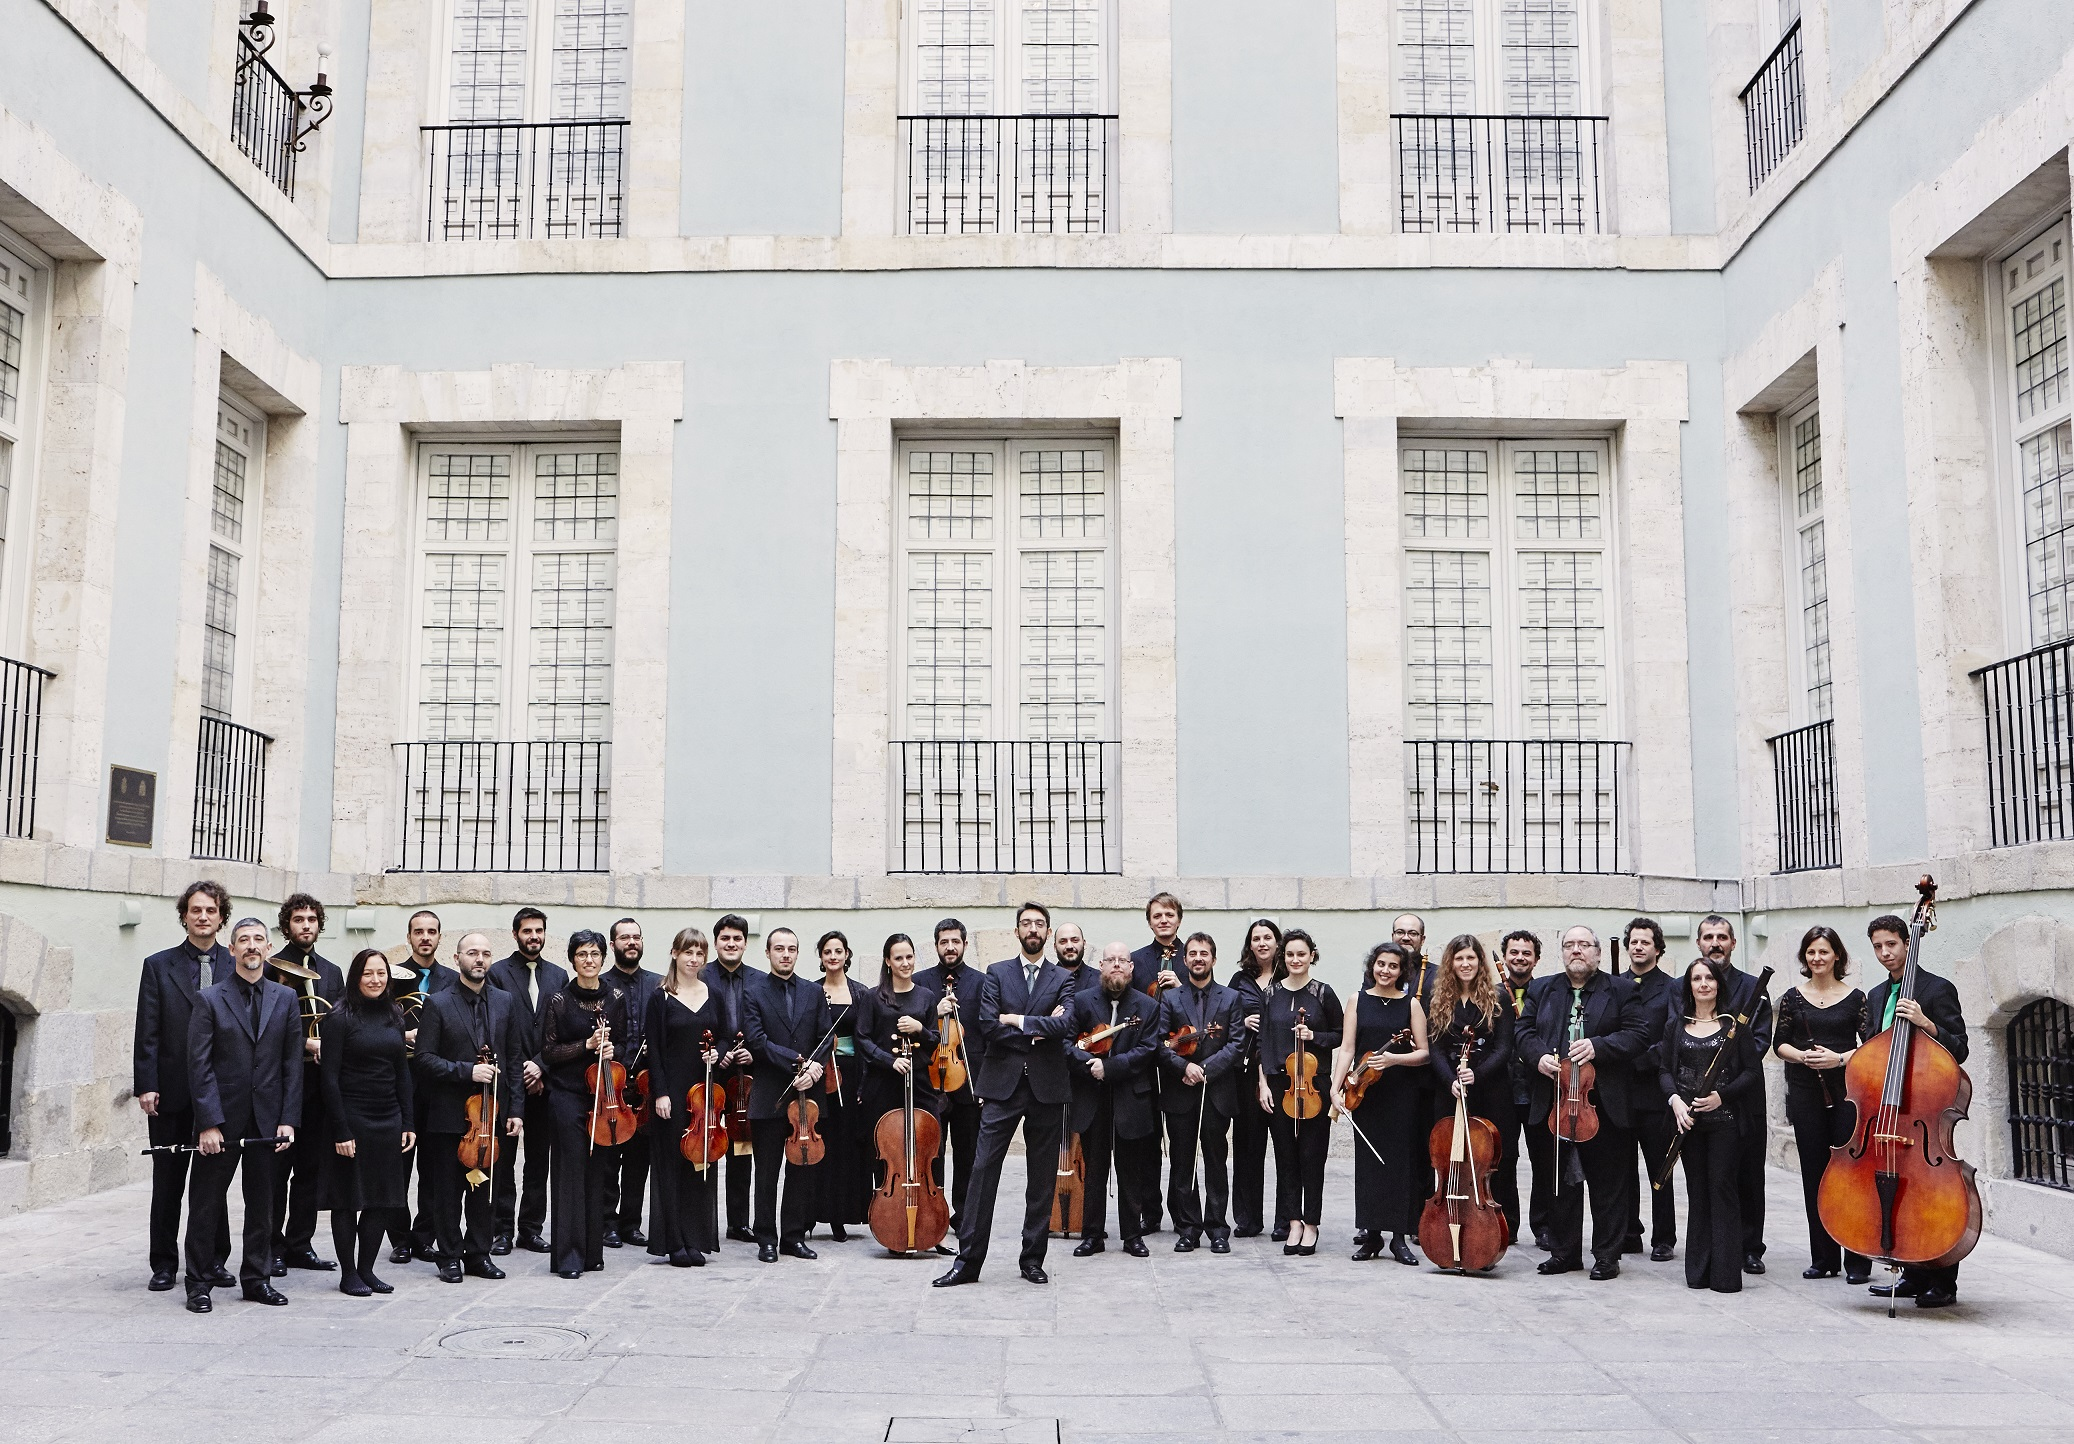 La Madrileña Montaño Finalista mejor grupo de música antigua de España premios asociación de grupos GEMA the Public votes as finalist to La Madrileña conducted by Montaño as Spanish Better group of ancient music Orchestra Orquesta La Madrileña, an orchestra conducted by José Antonio Montaño, has been voted by public to be finalist under BEST ANCIENT MUSIC GROUP category in the GEMA AWARDS- Association of Spanish Groups of Ancient Music